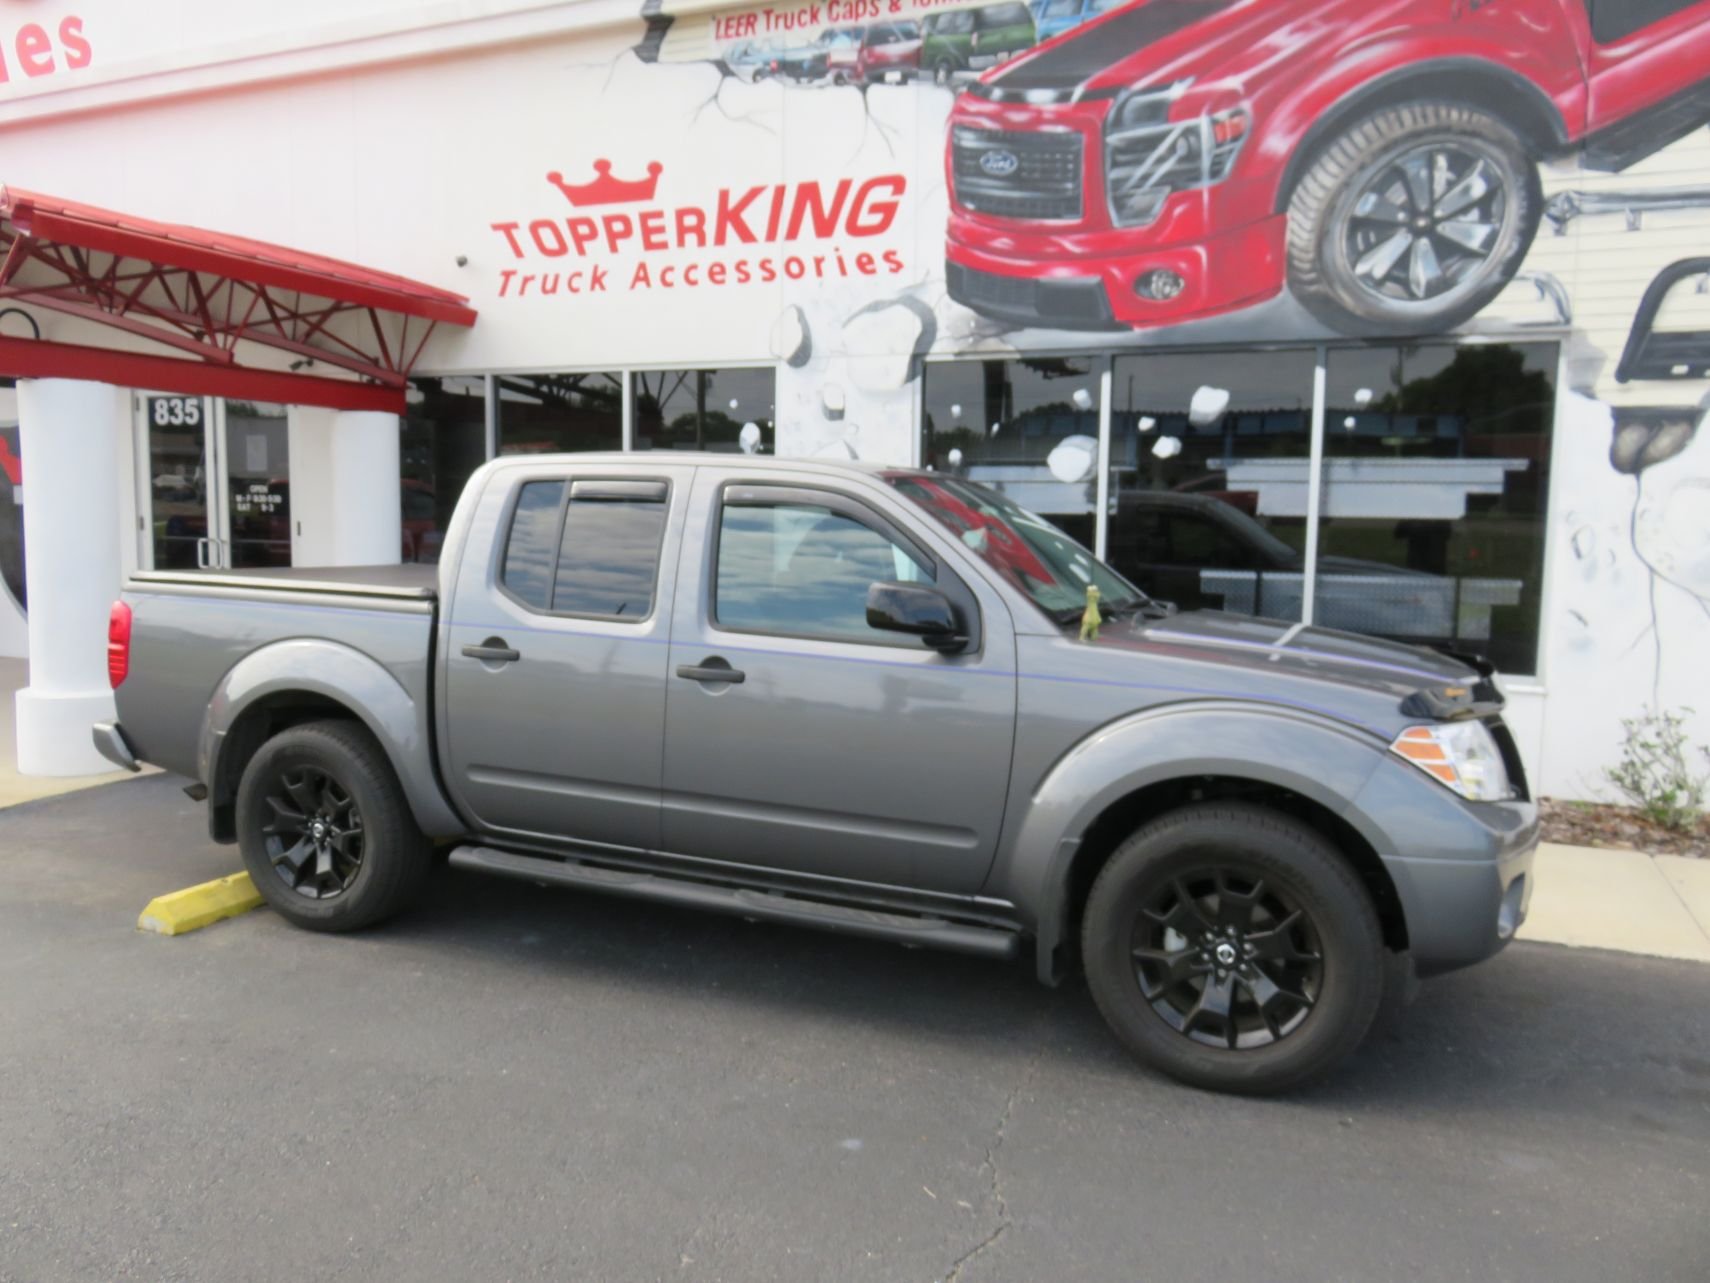 2020 Nissan Frontier with TruXport, Vent Visors, Nerf Bars, Hitch, Tint. Call TopperKING Brandon 813-689-2449 or Clearwater FL 727-530-9066.